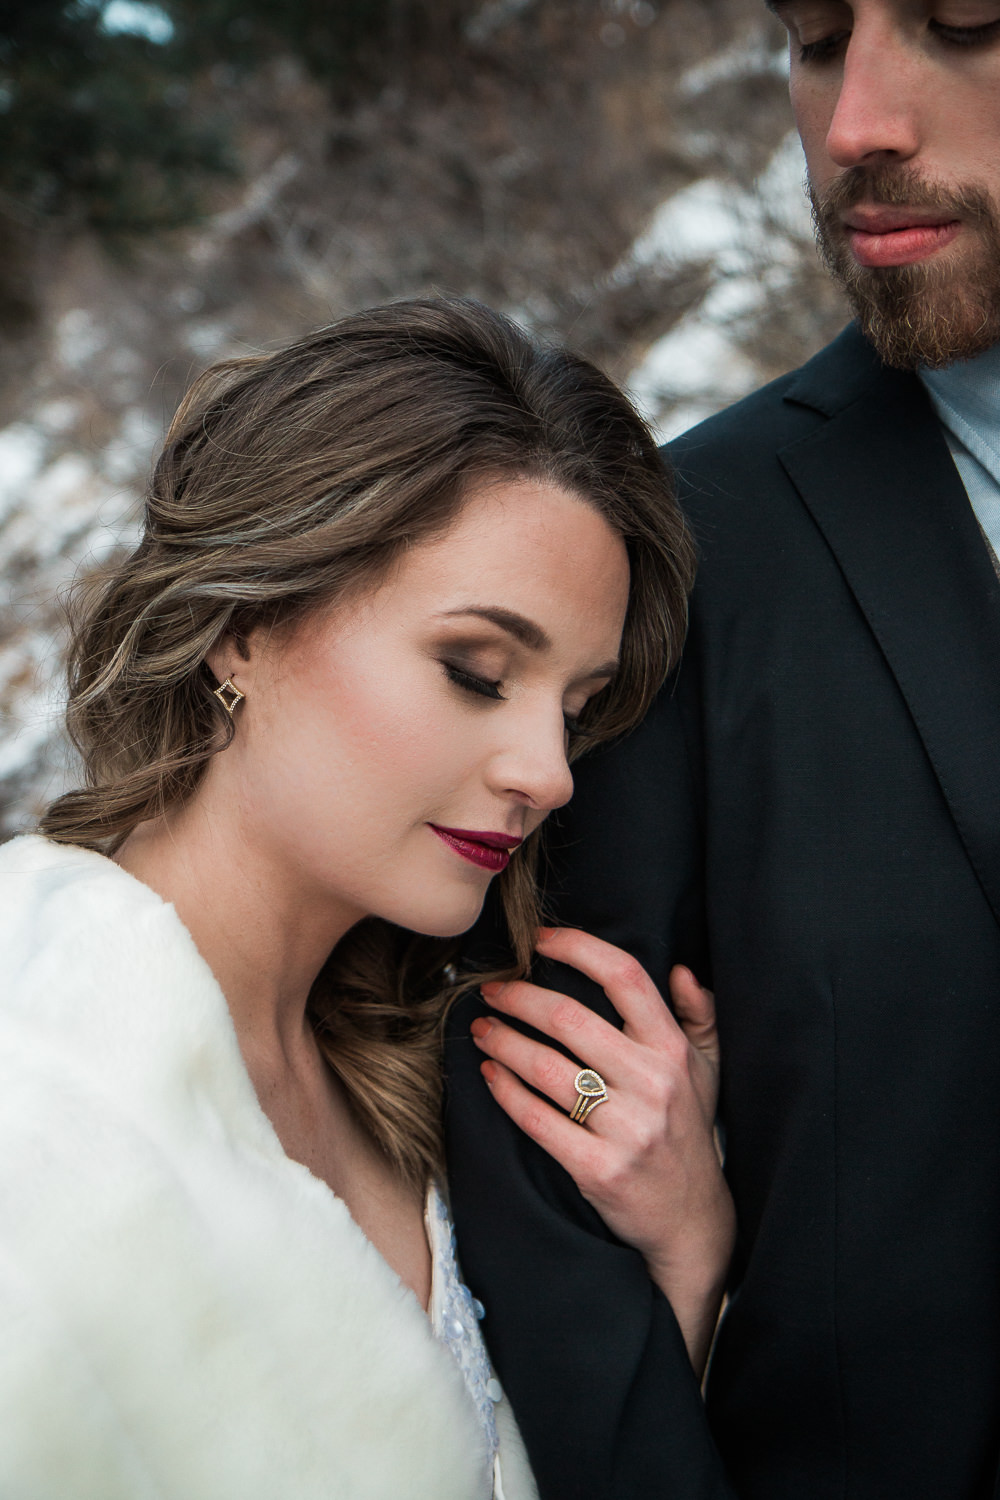 Bridal hair and make up custom wedding jewelry Denver Colorado local